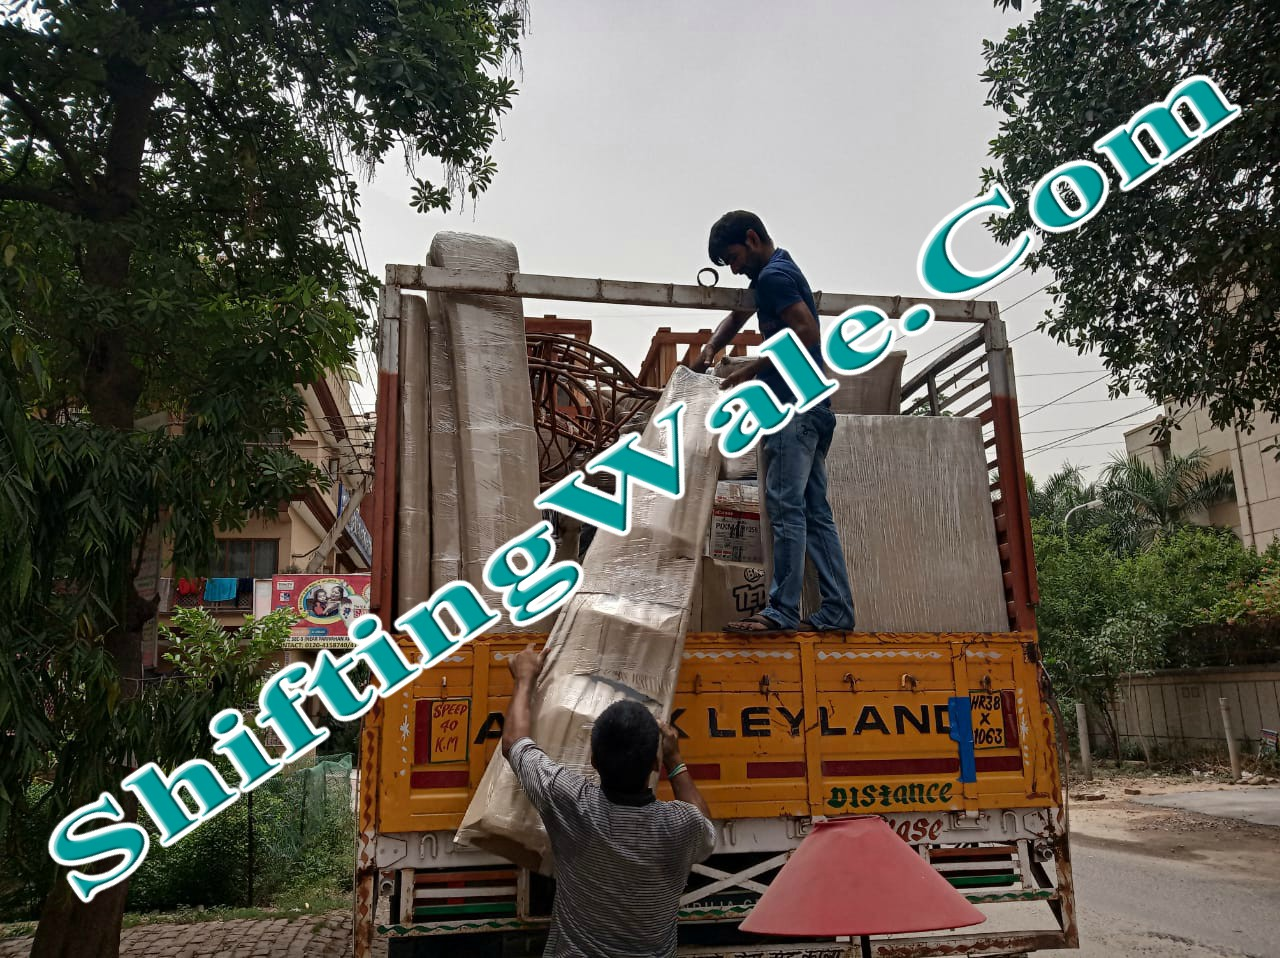 Rudrapur To Mumbai Trusted Packers and Movers Get Complete Relocation